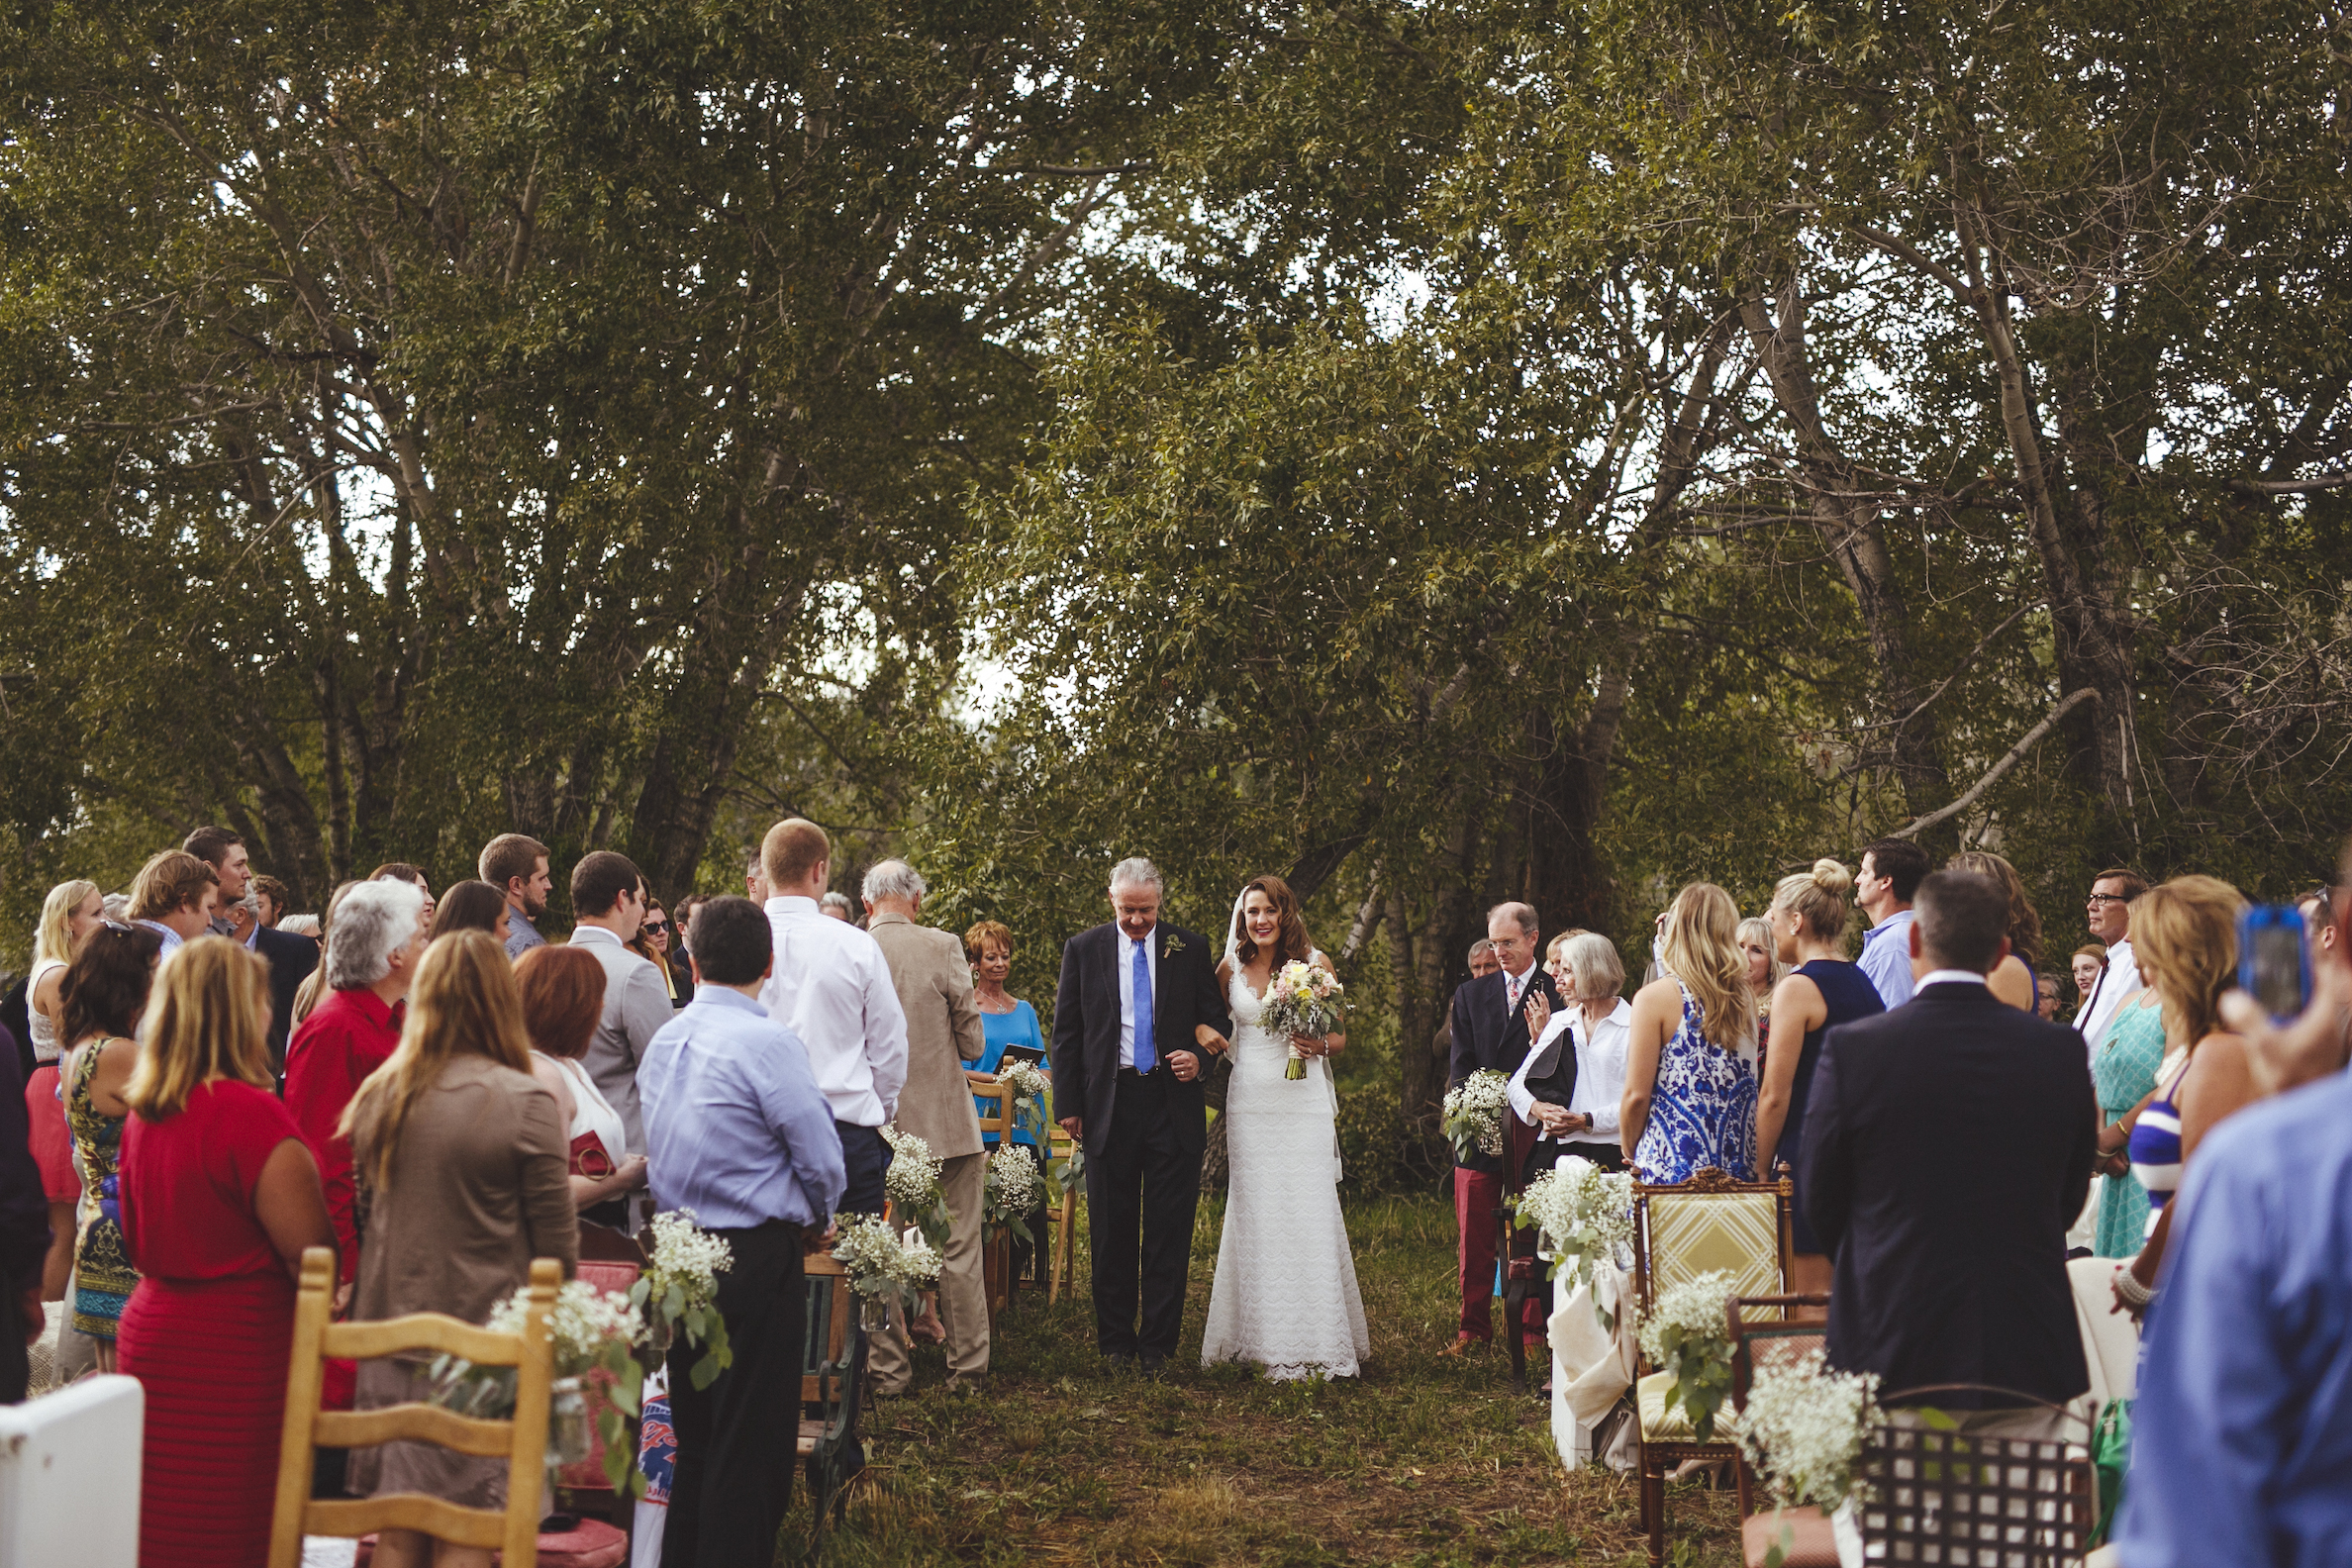 bestaustinweddingphotographer14191.JPG